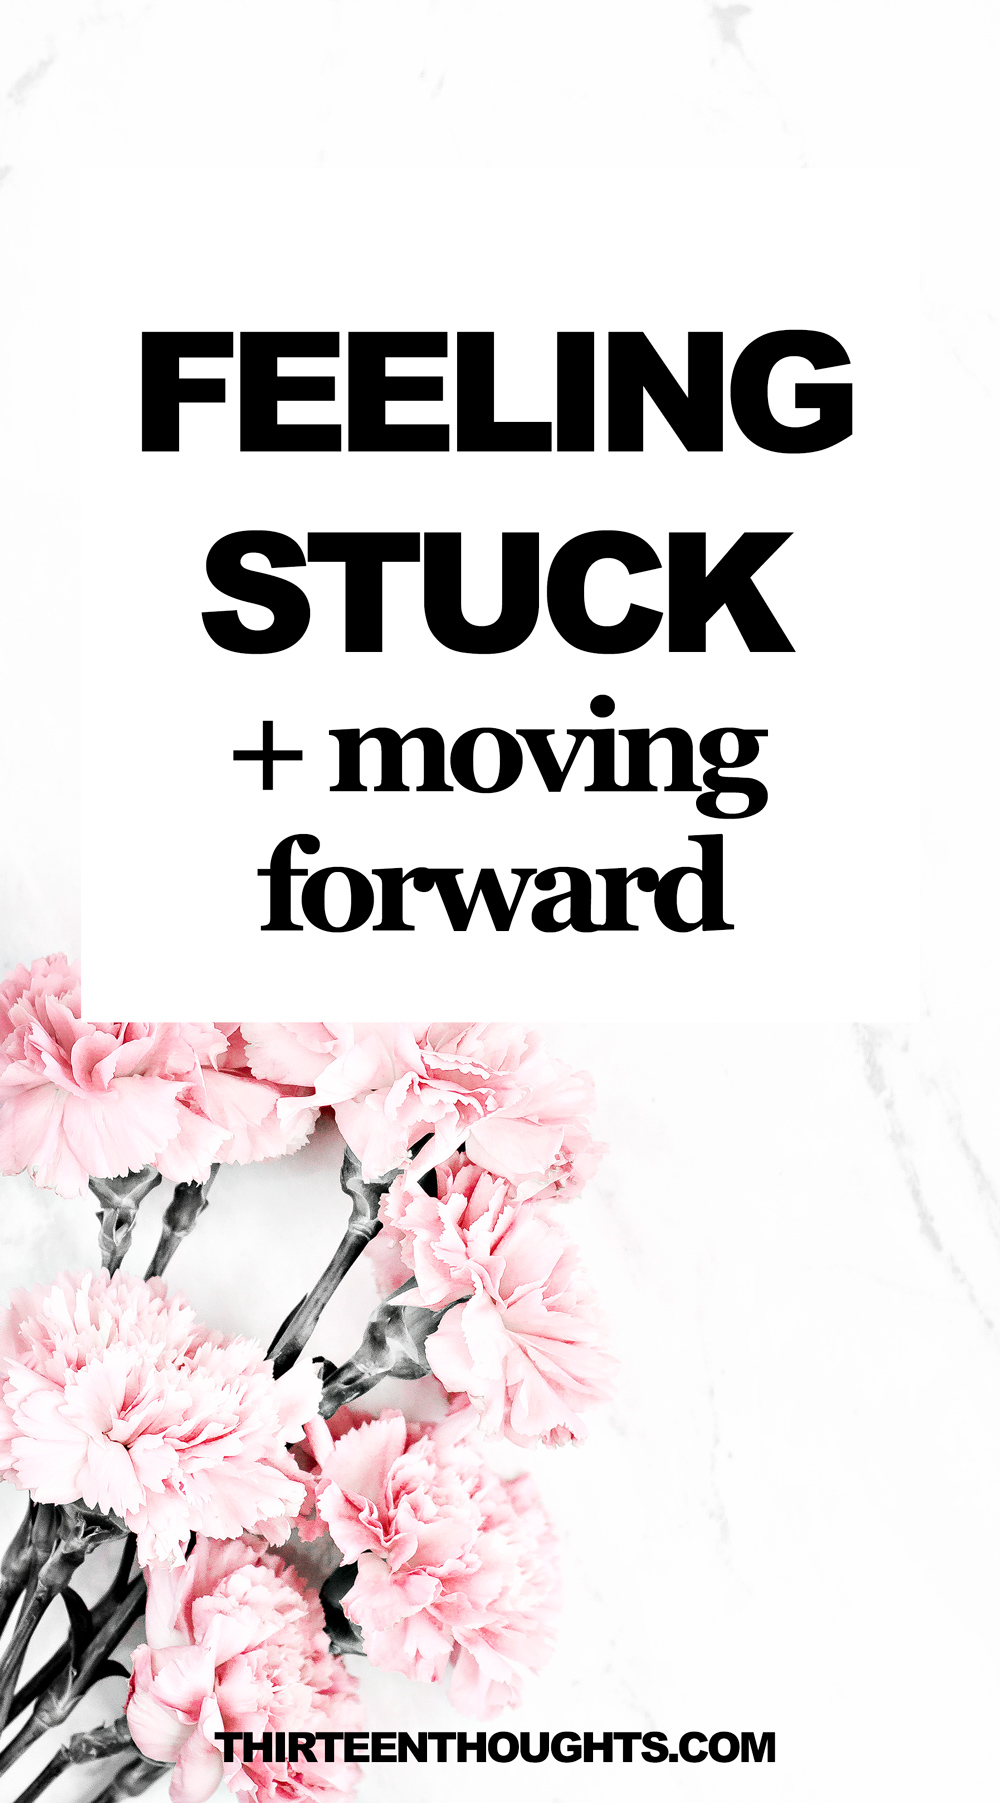 How to deal with feeling stuck in life